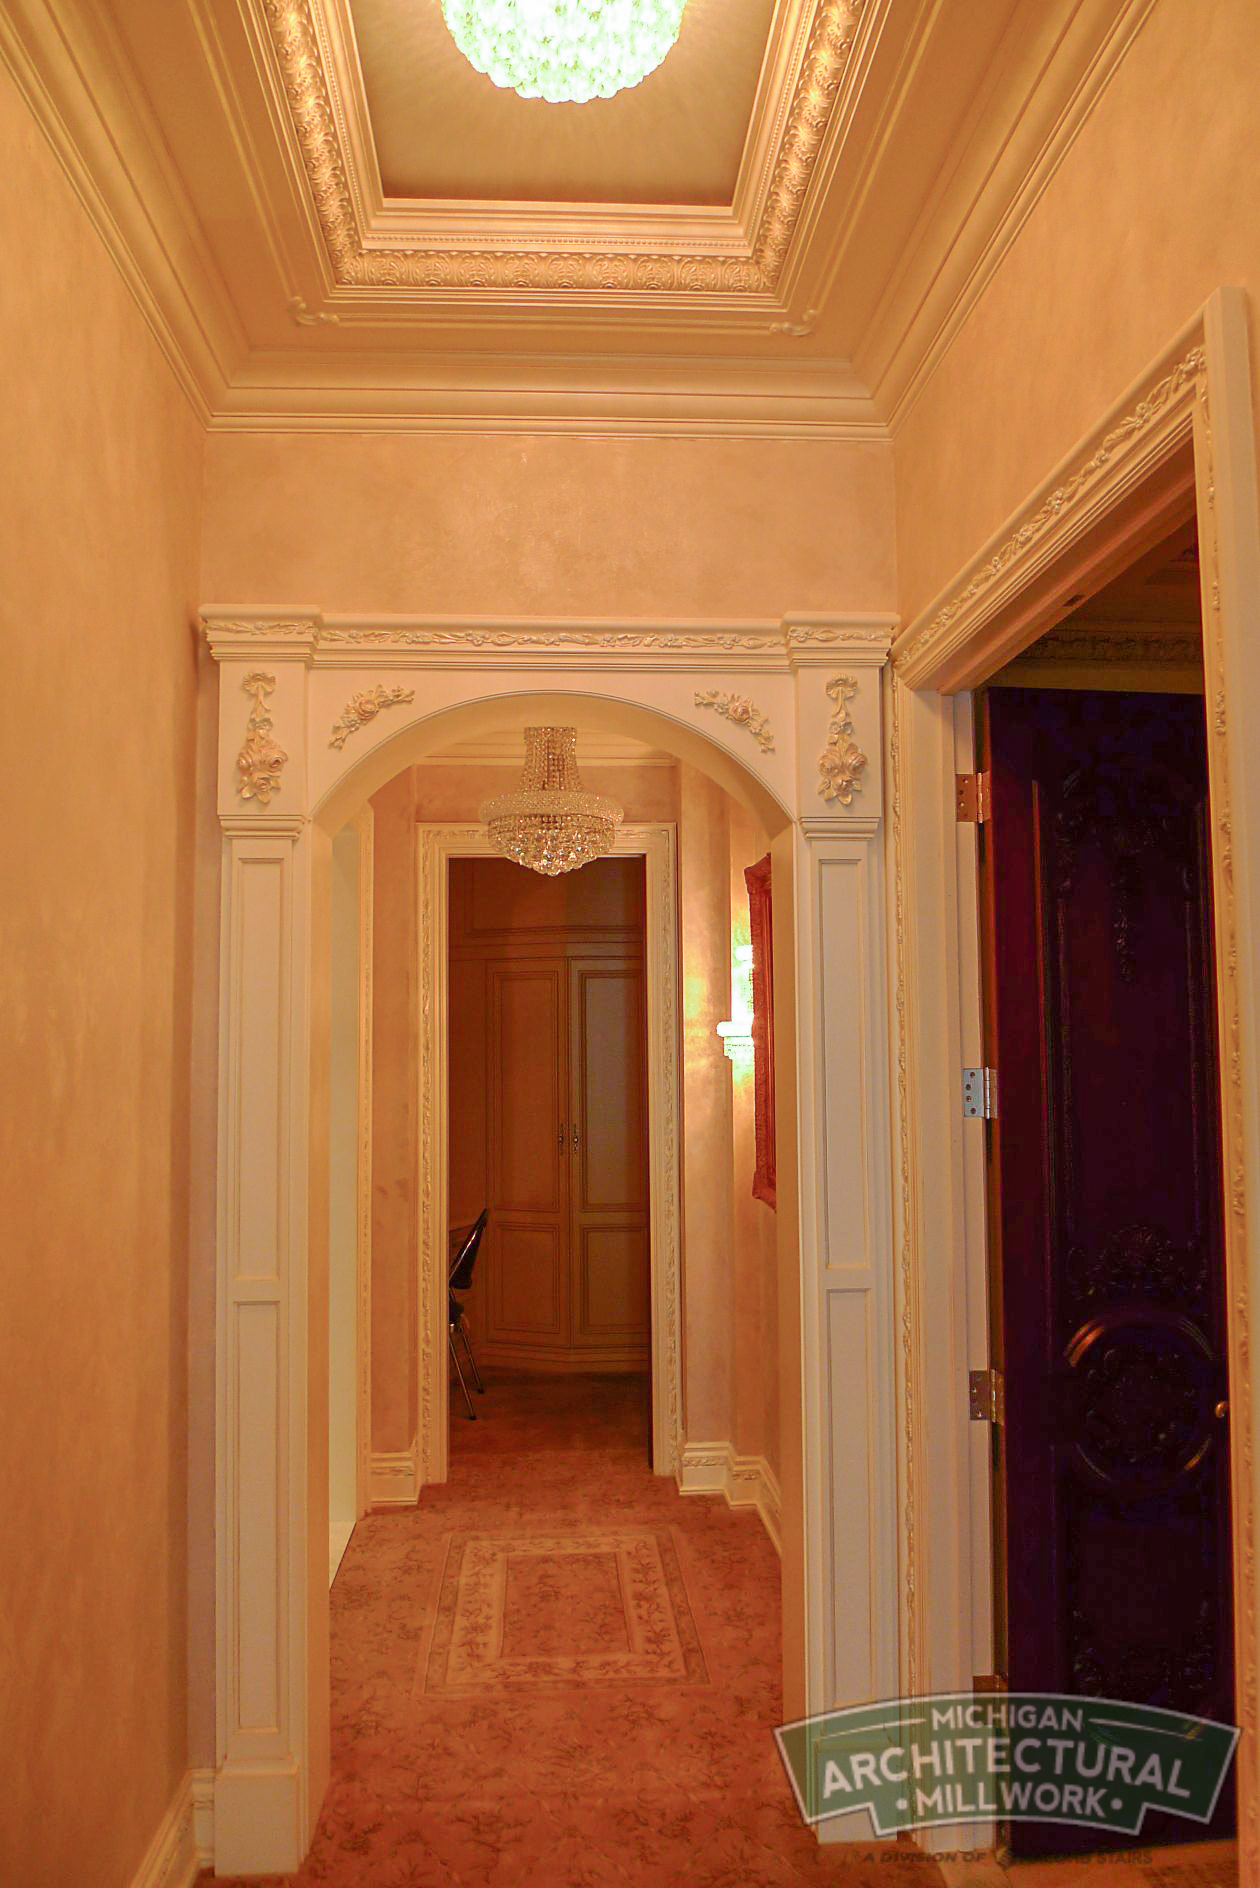 Michigan Architectural Millwork- Moulding and Millwork Photo-152.jpg